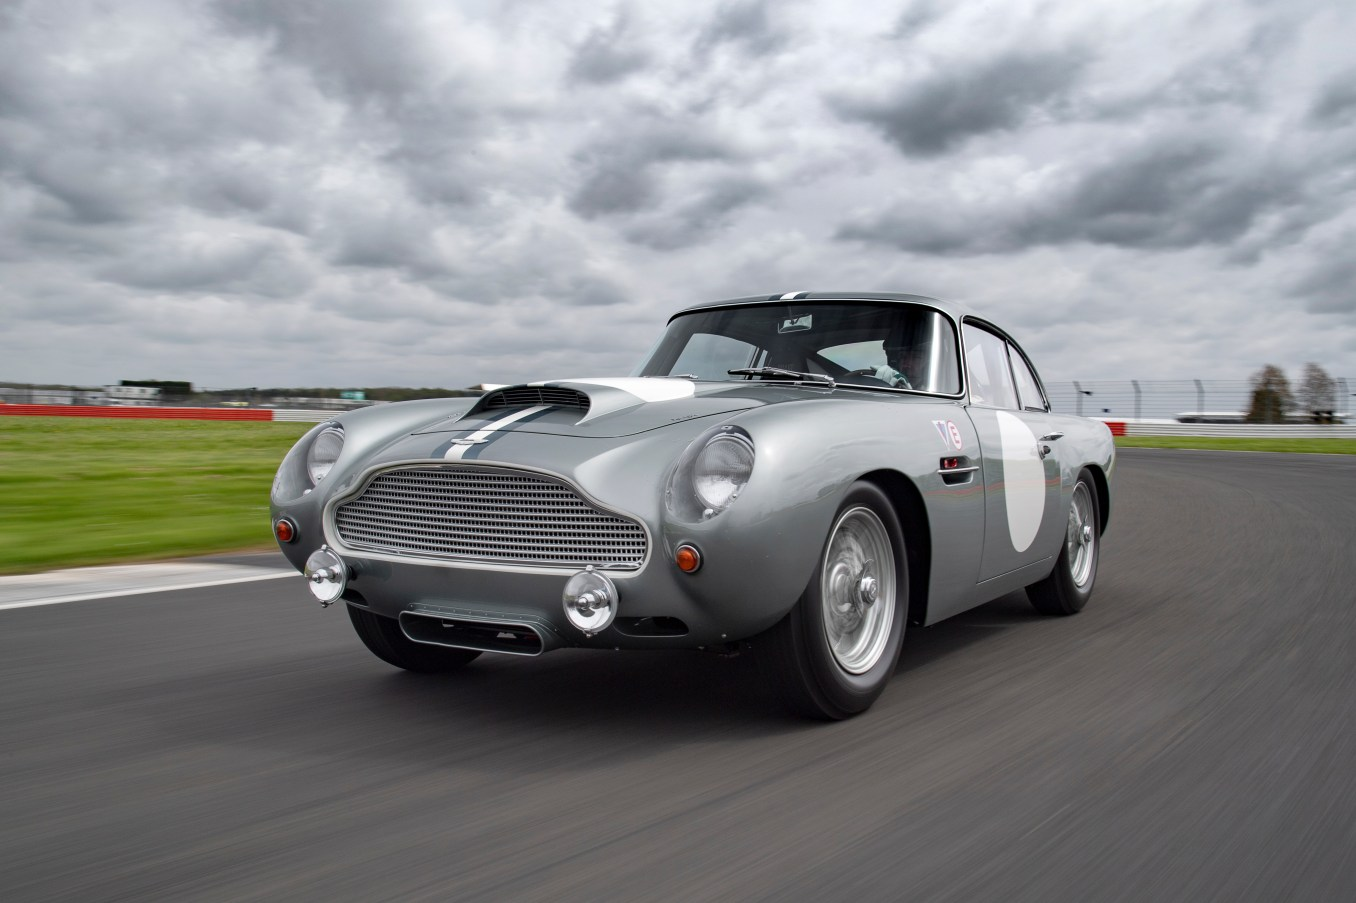 Aston Martin DB4 GT ┬r Photo Max Earey (23)